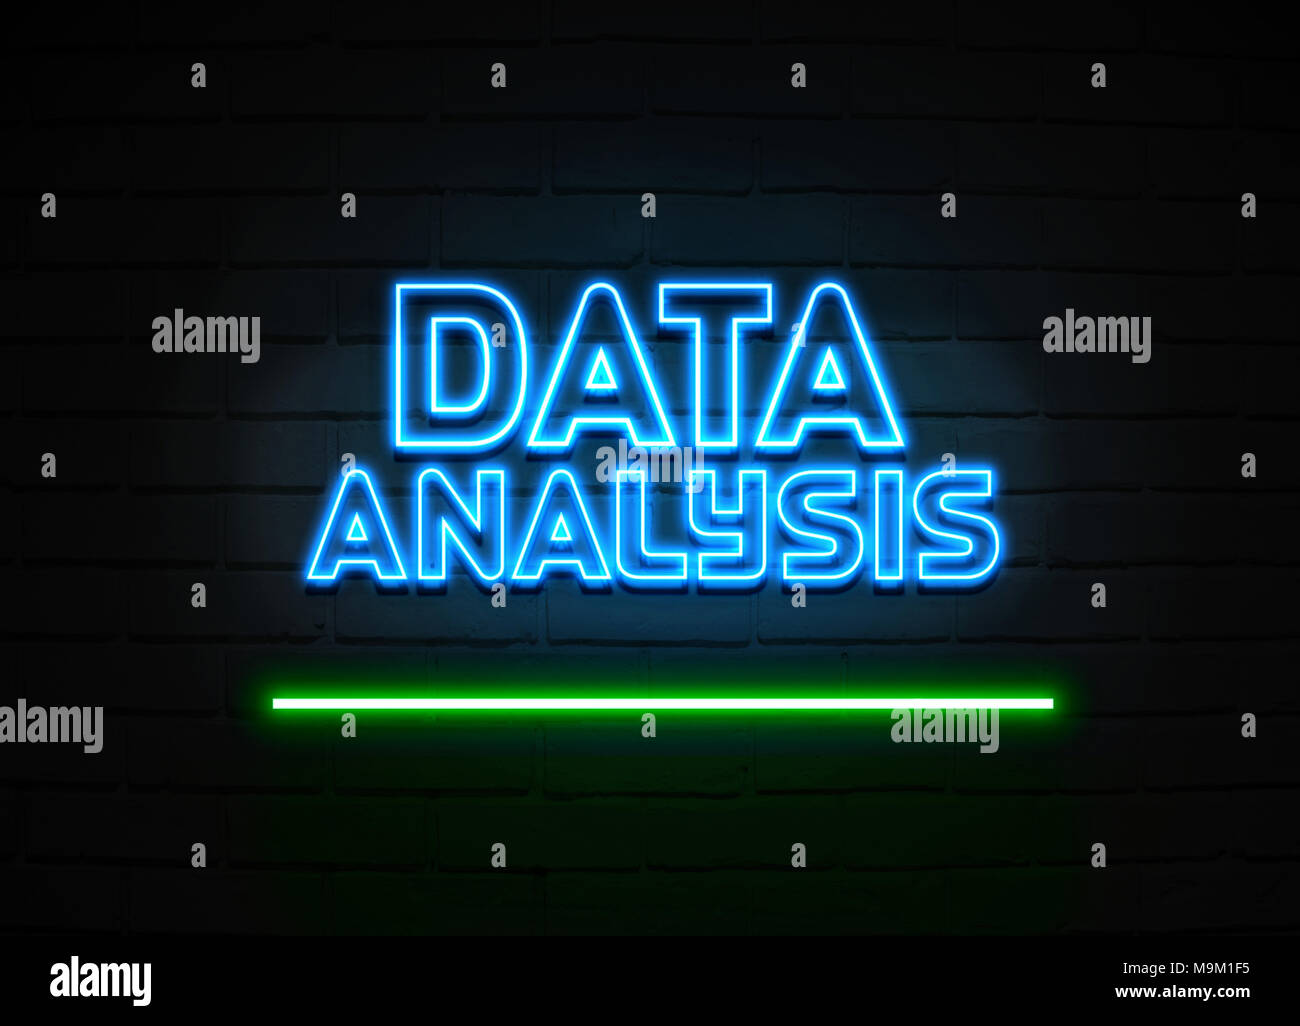 Data Analysis neon sign - Glowing Neon Sign on brickwall wall - 3D rendered royalty free stock illustration. - Stock Image